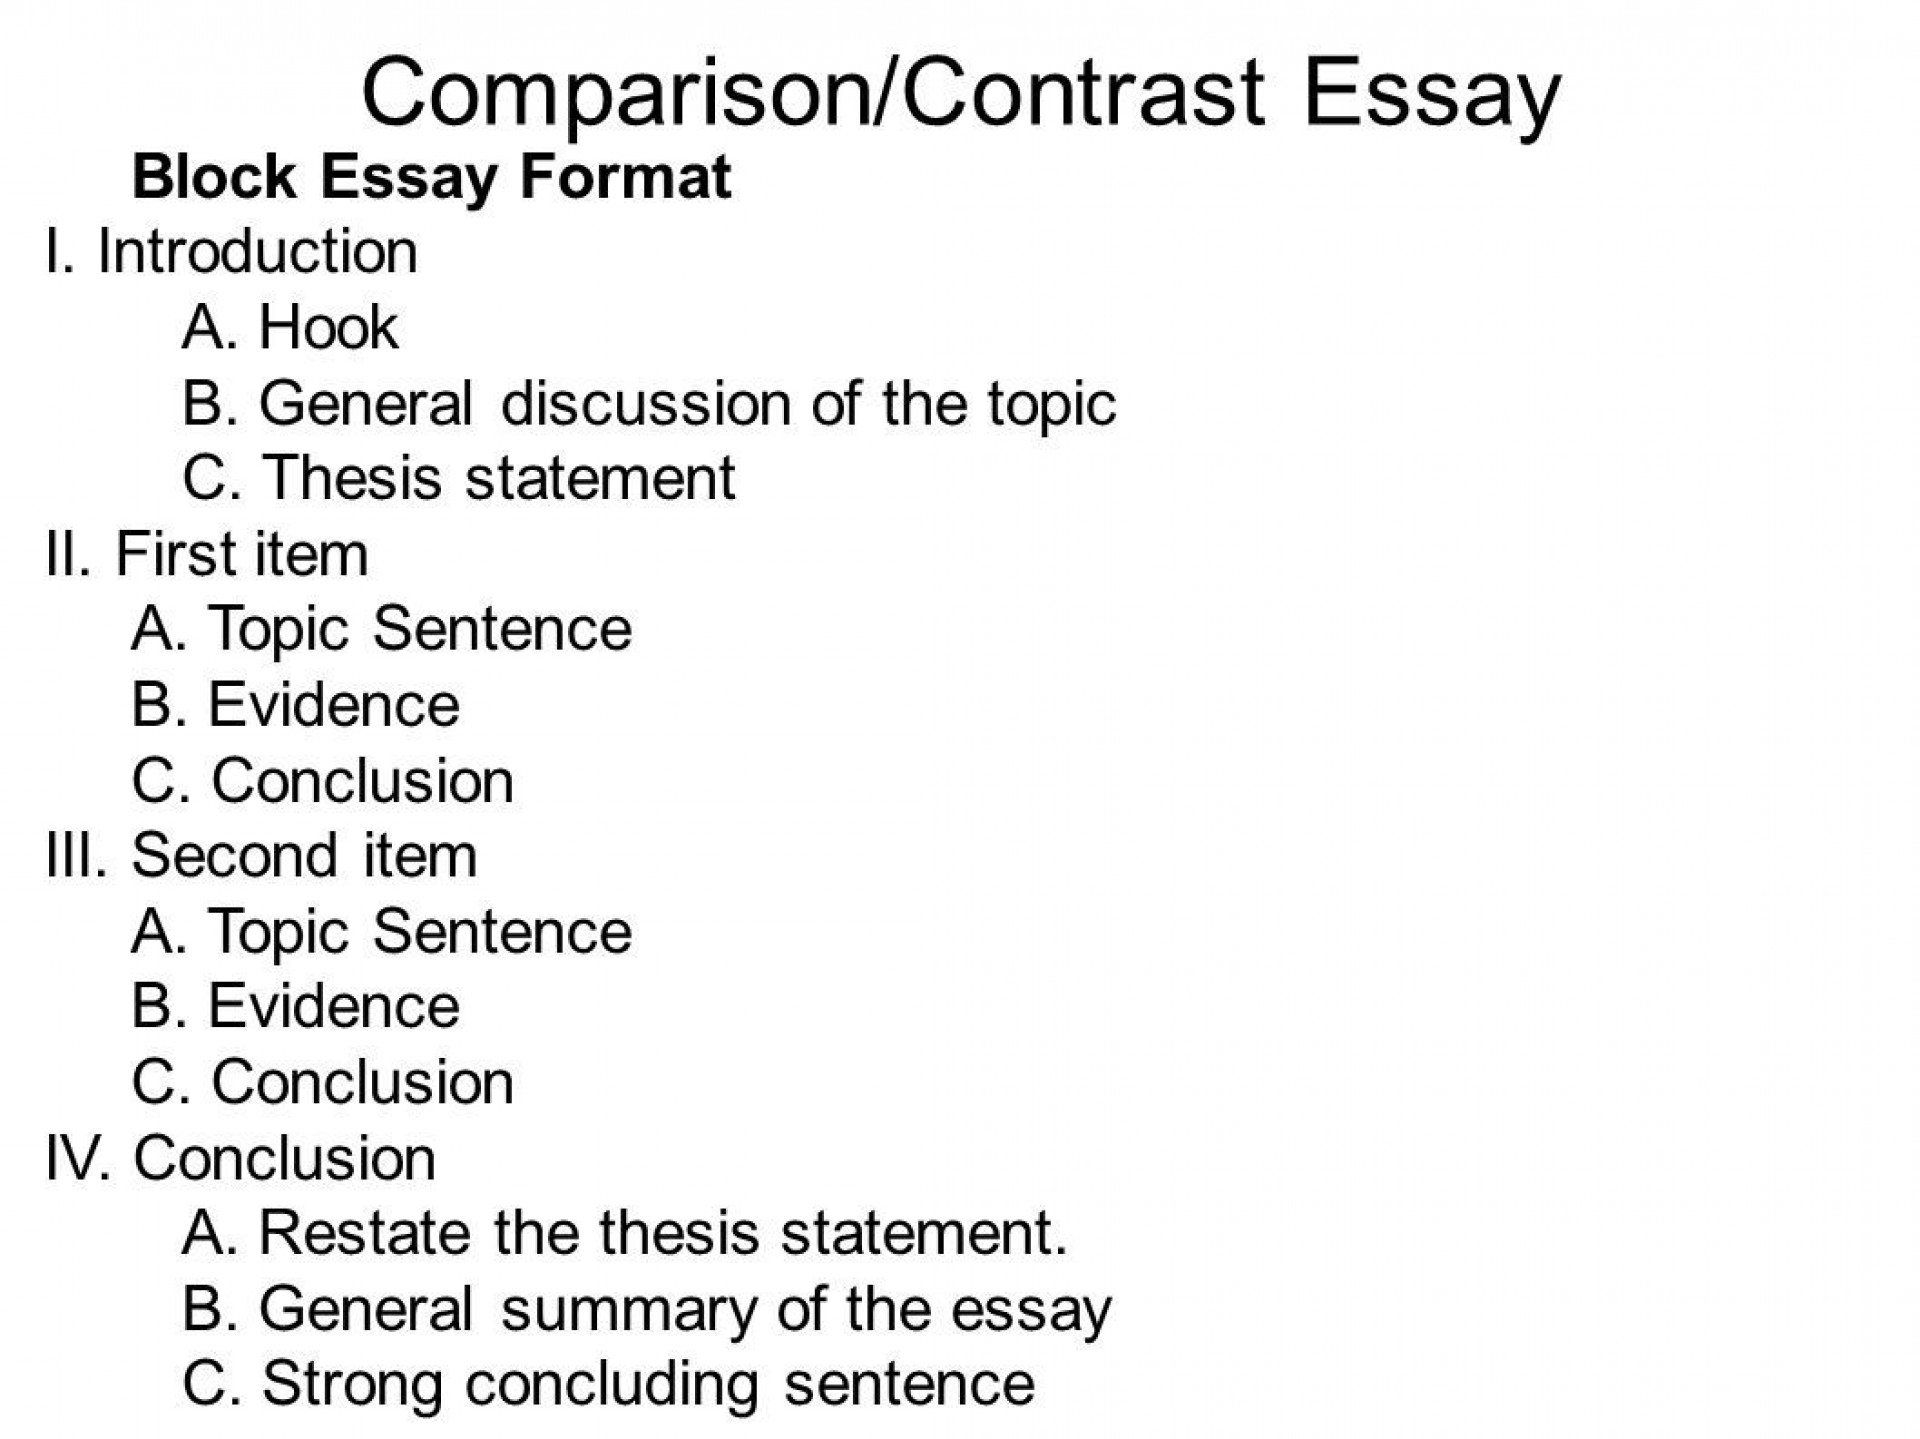 006 Essay Example Conclusion For Compare And Awesome Contrast How To Write A Paragraph Examples 1920